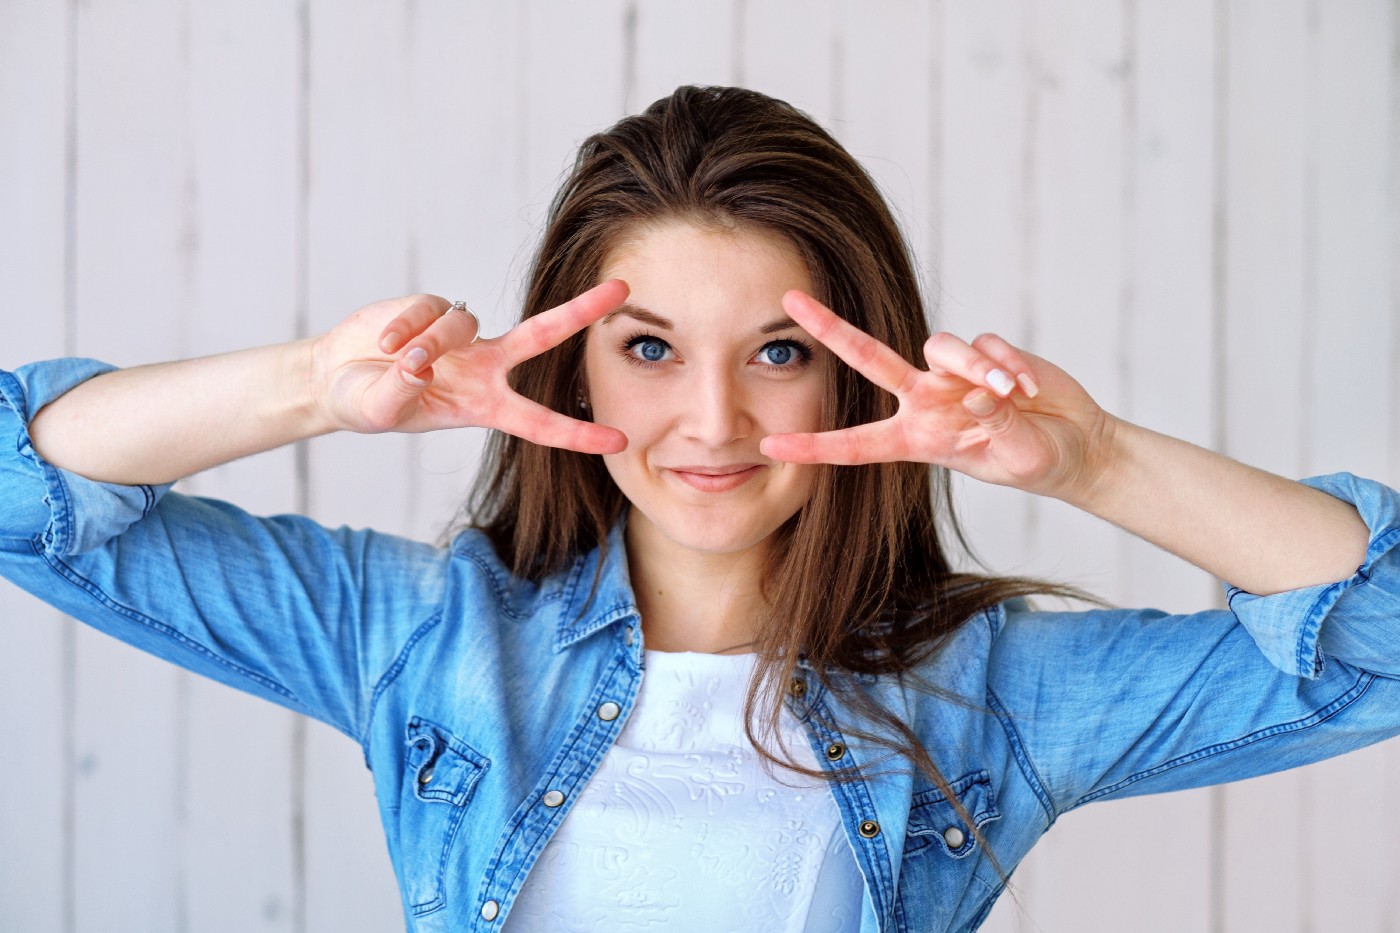 woman with fingers in front of her face